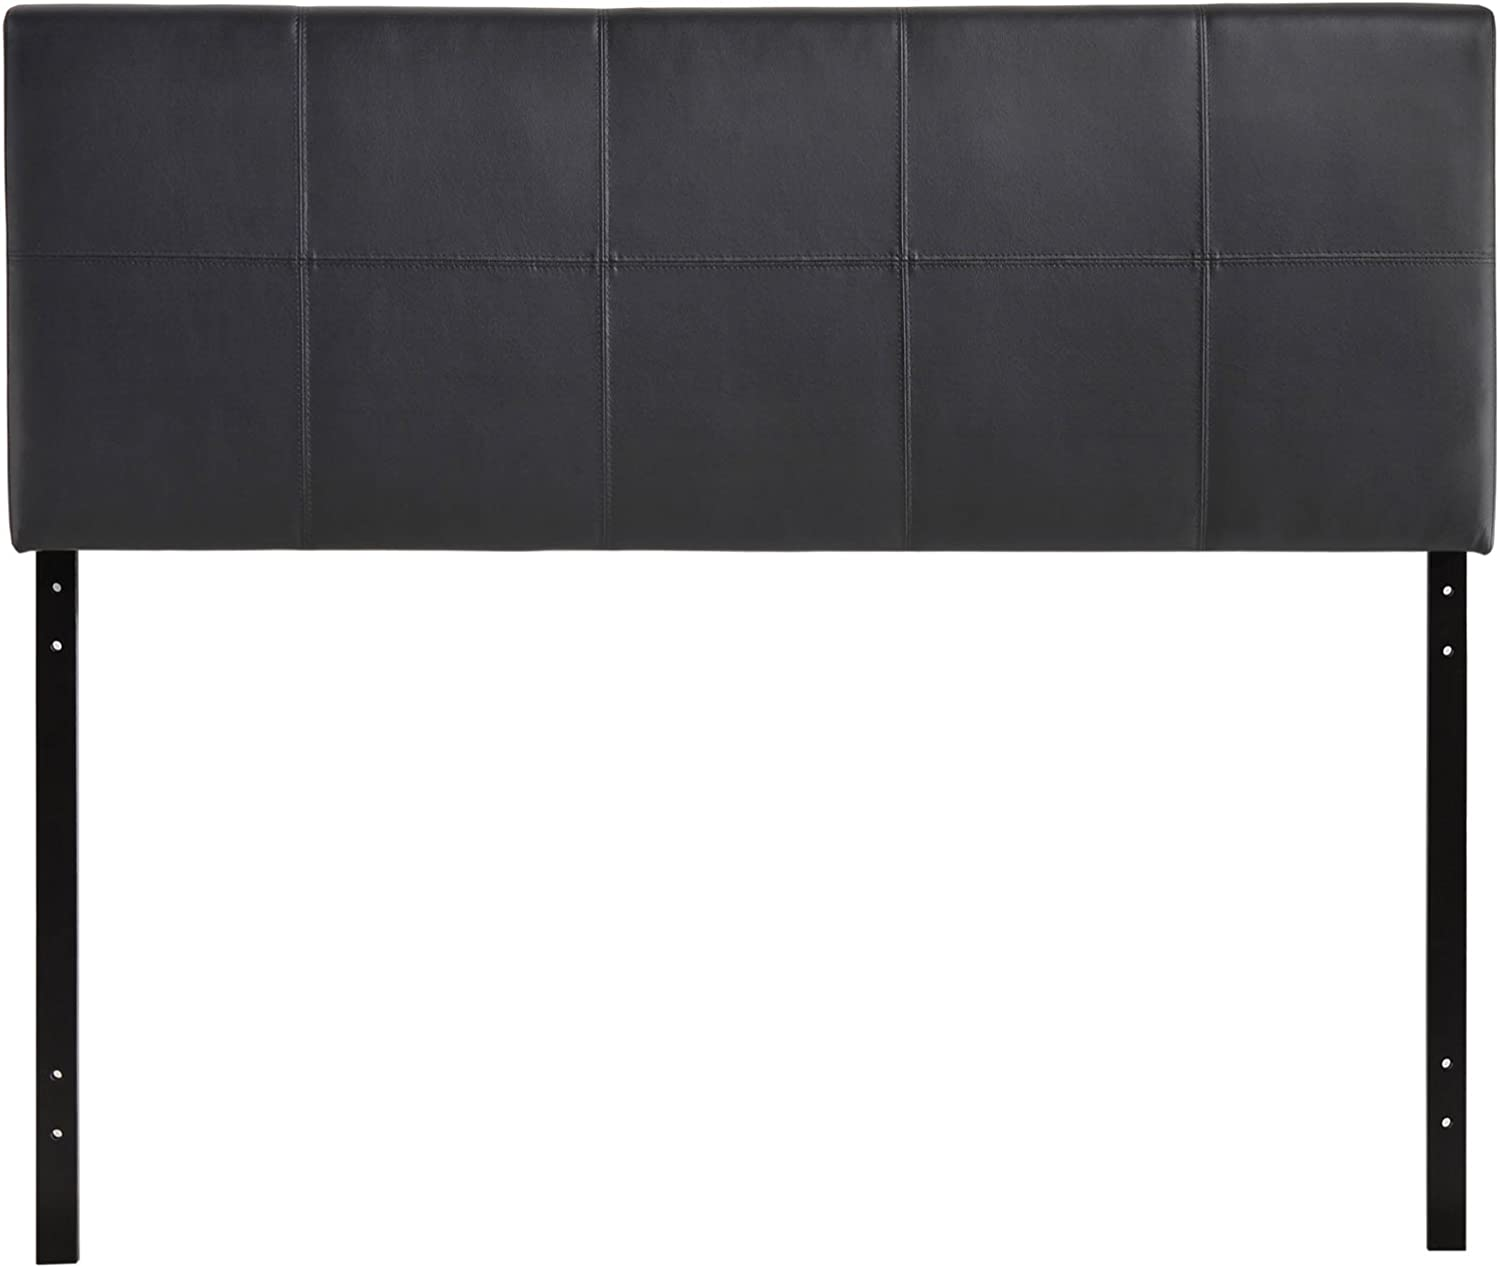 Modway Oliver Faux Leather Upholstered Queen Headboard in Black